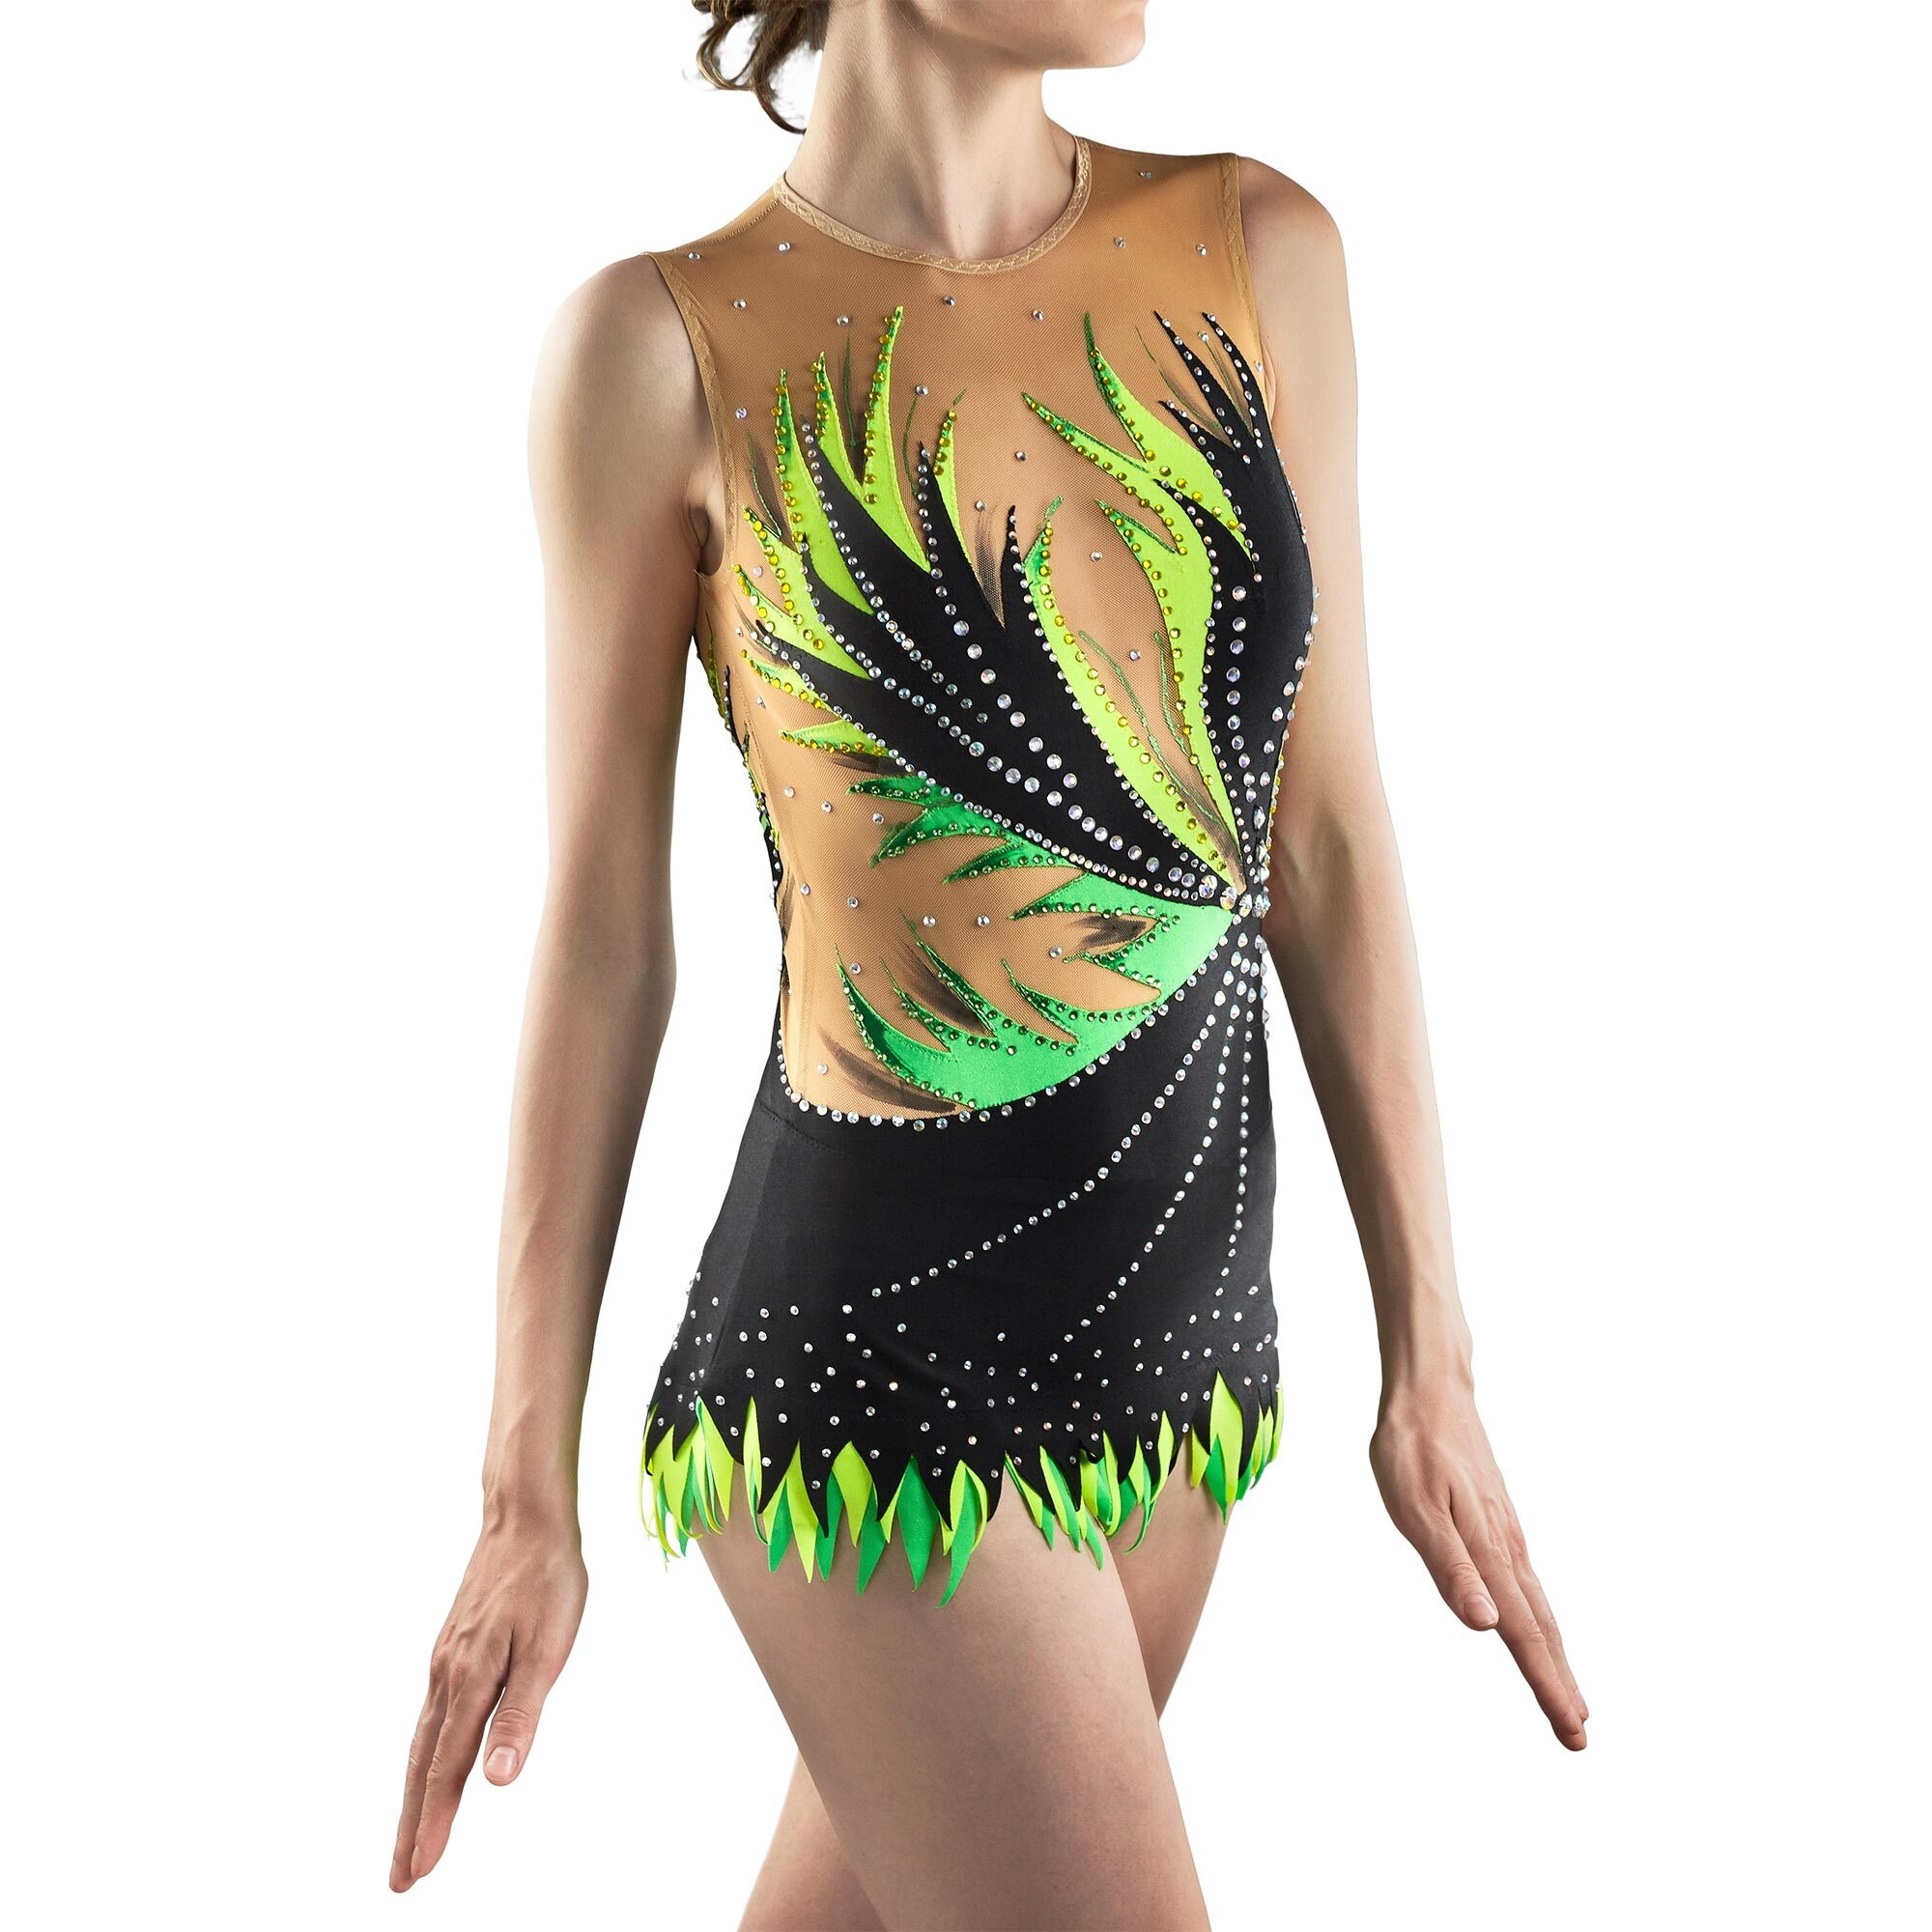 Black, lemon, green Rhythmic Gymnastics Leotard 198 made by gymnast's measurements for trainings and competitions